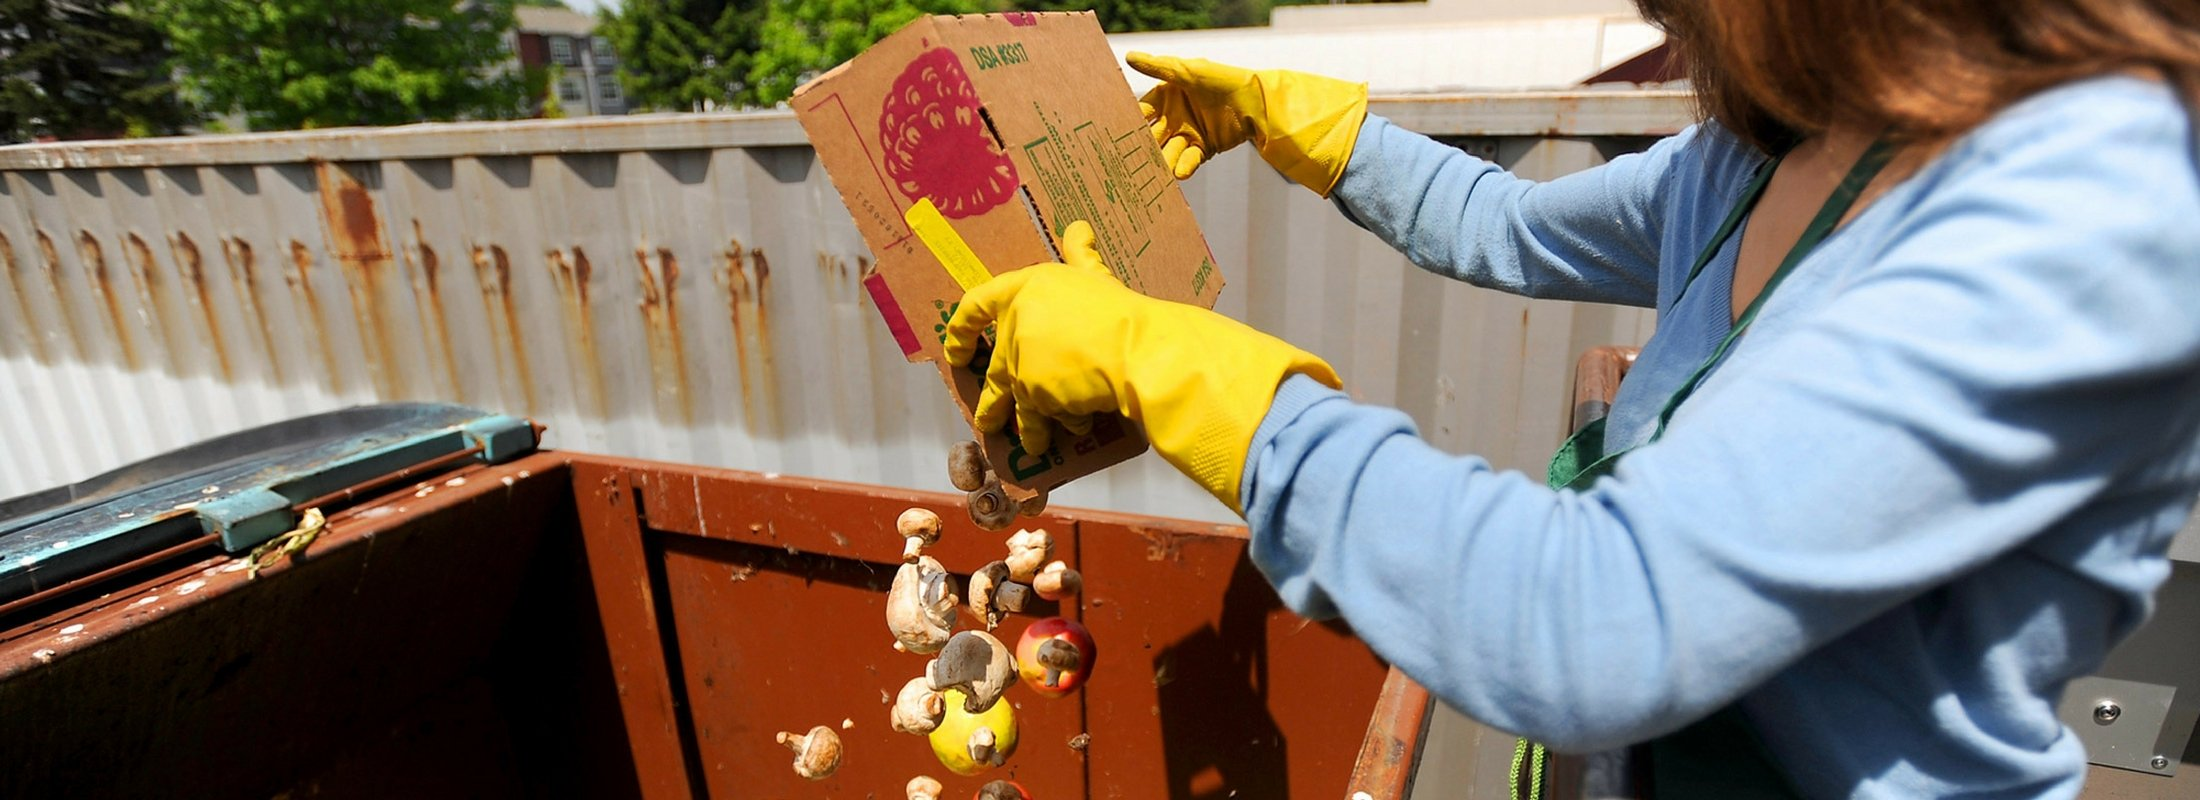 Person throwing a box of food into a compost dumpster